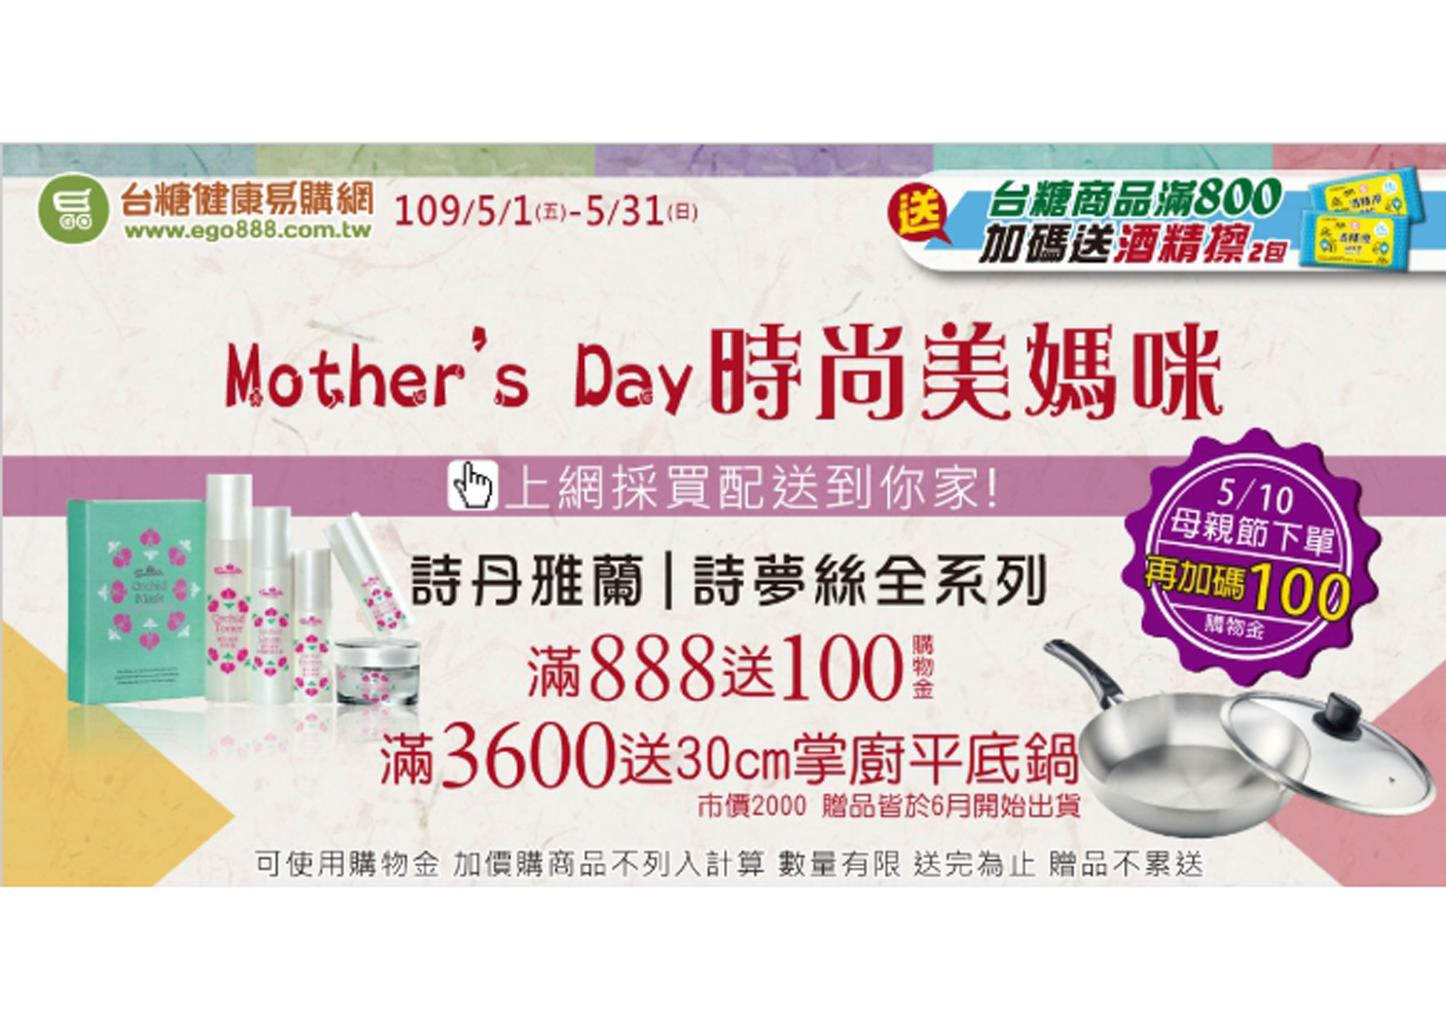 Consumers can shop gift selections for Mother's Day on Ego888 amid COVID-19 to express appreciation to mothers without going out